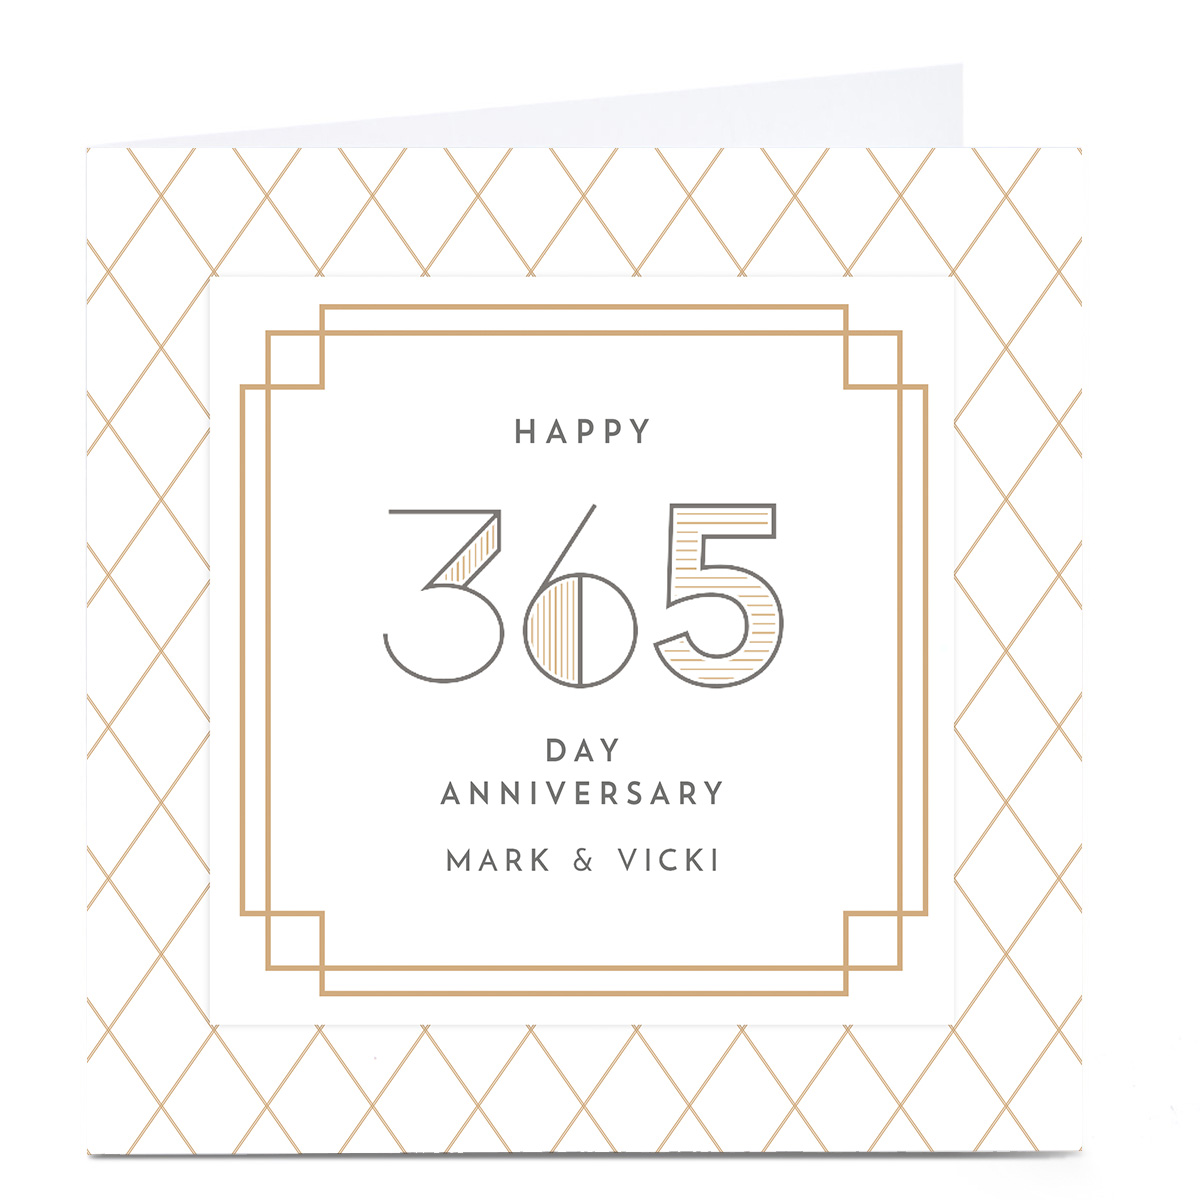 Personalised Anniversary Card - Happy Day